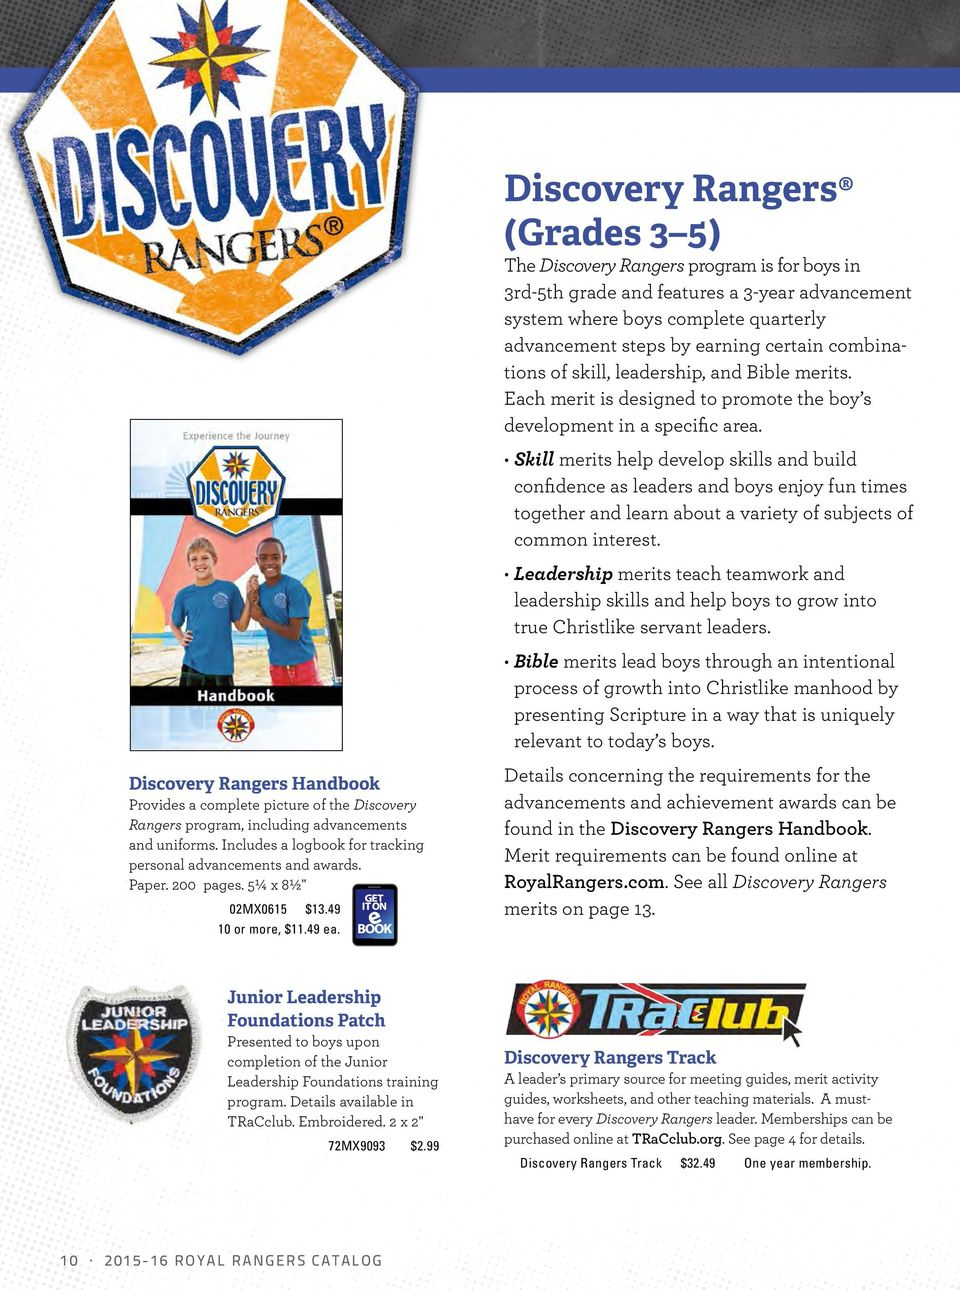 Dear royal rangers leader pdf skill merits help develop skills and build confidence as leaders and boys enjoy fun times together fandeluxe Gallery